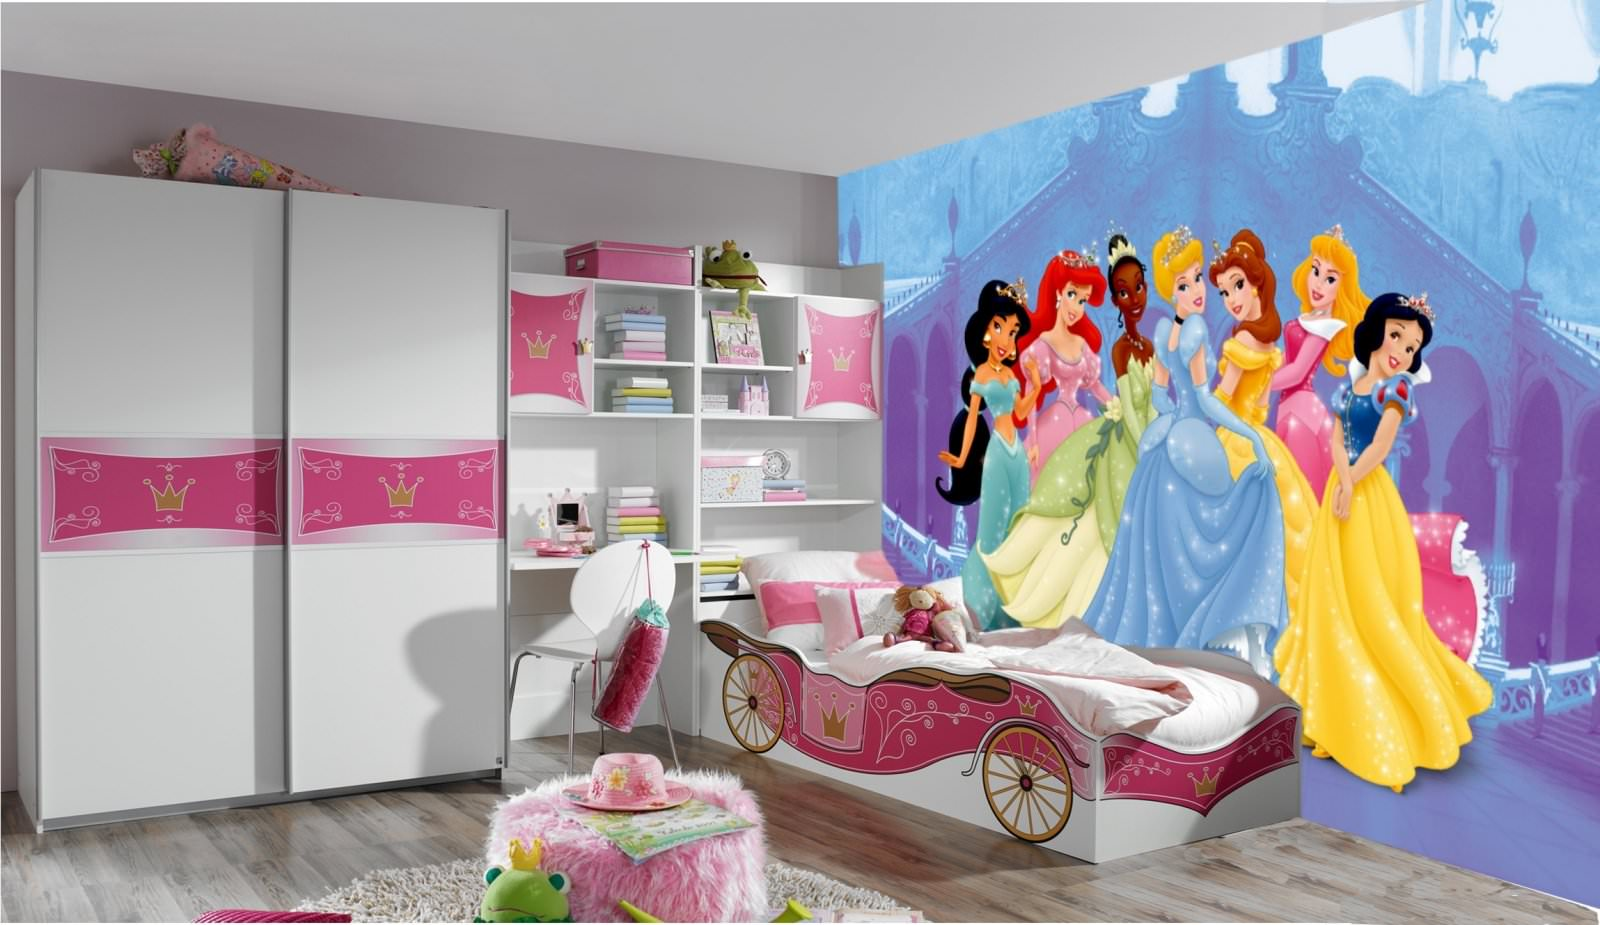 papier peint chambre garcon 7 ans angers devis. Black Bedroom Furniture Sets. Home Design Ideas